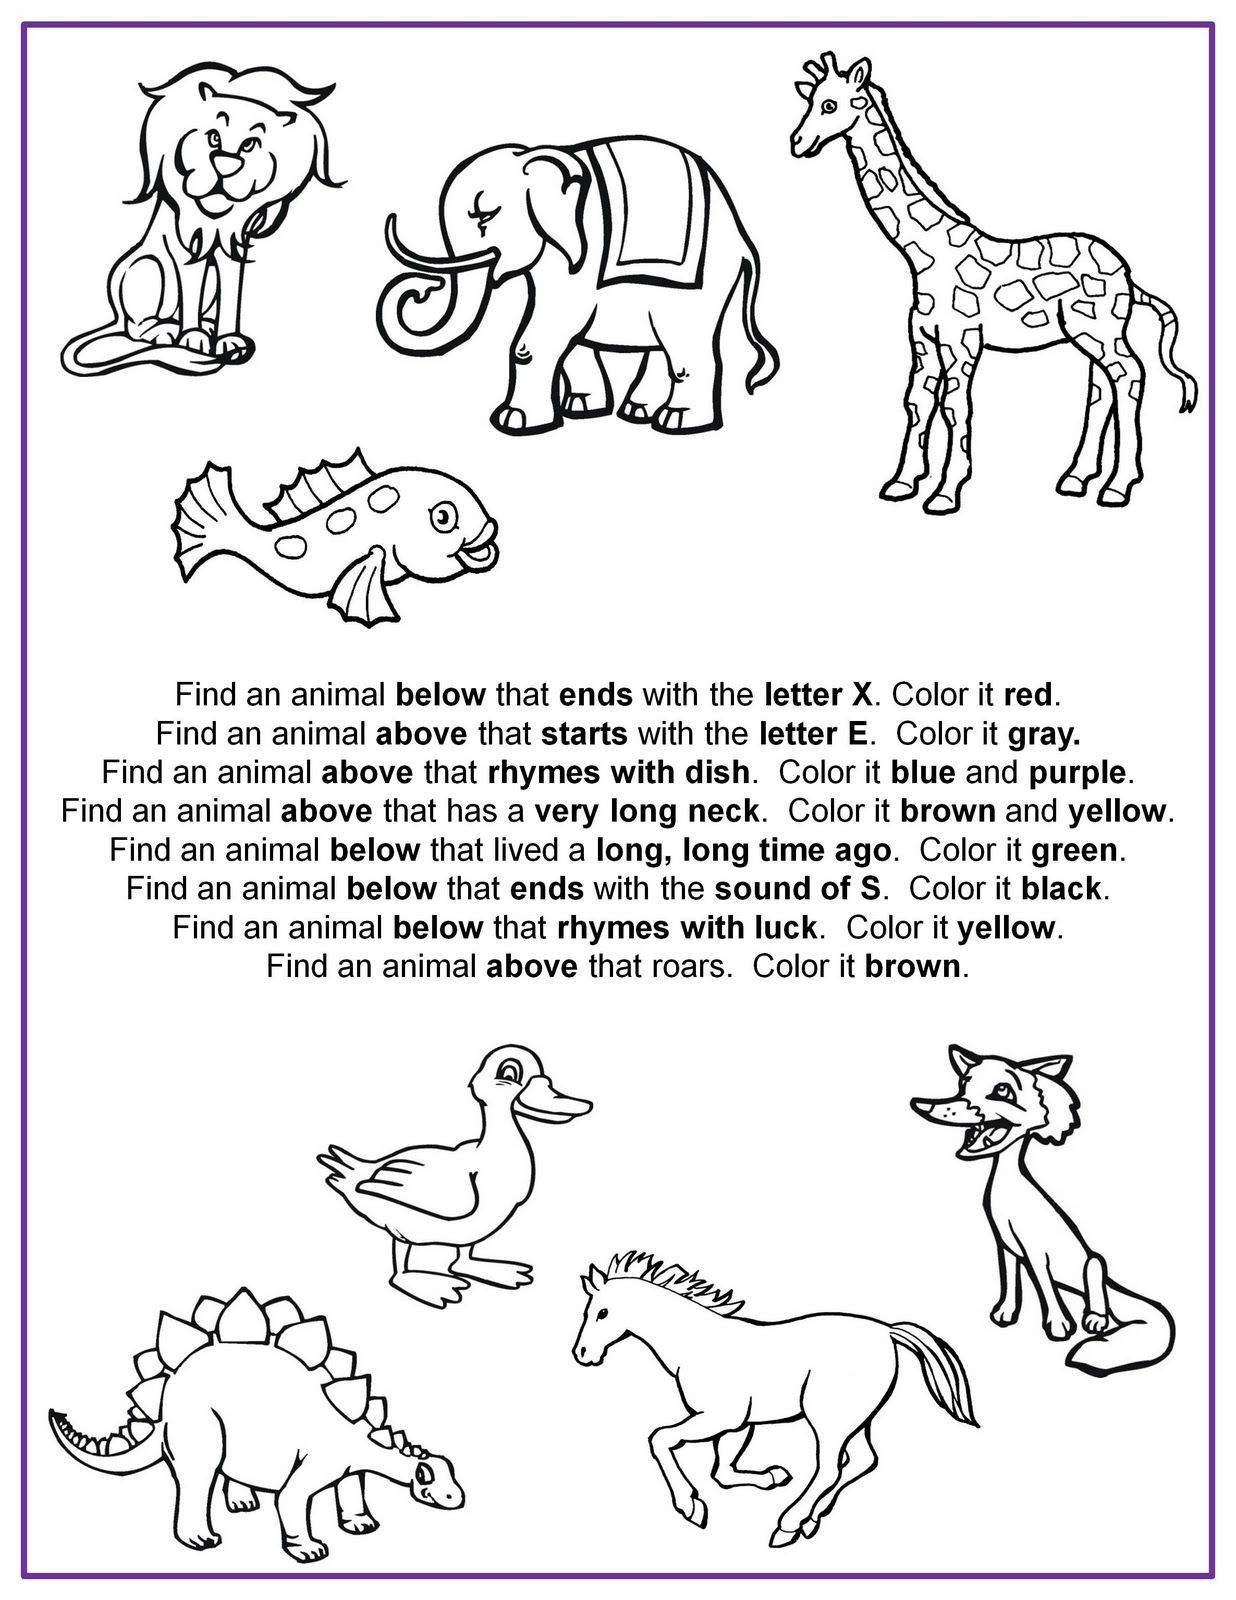 Find It Color It Following Directions Worksheet